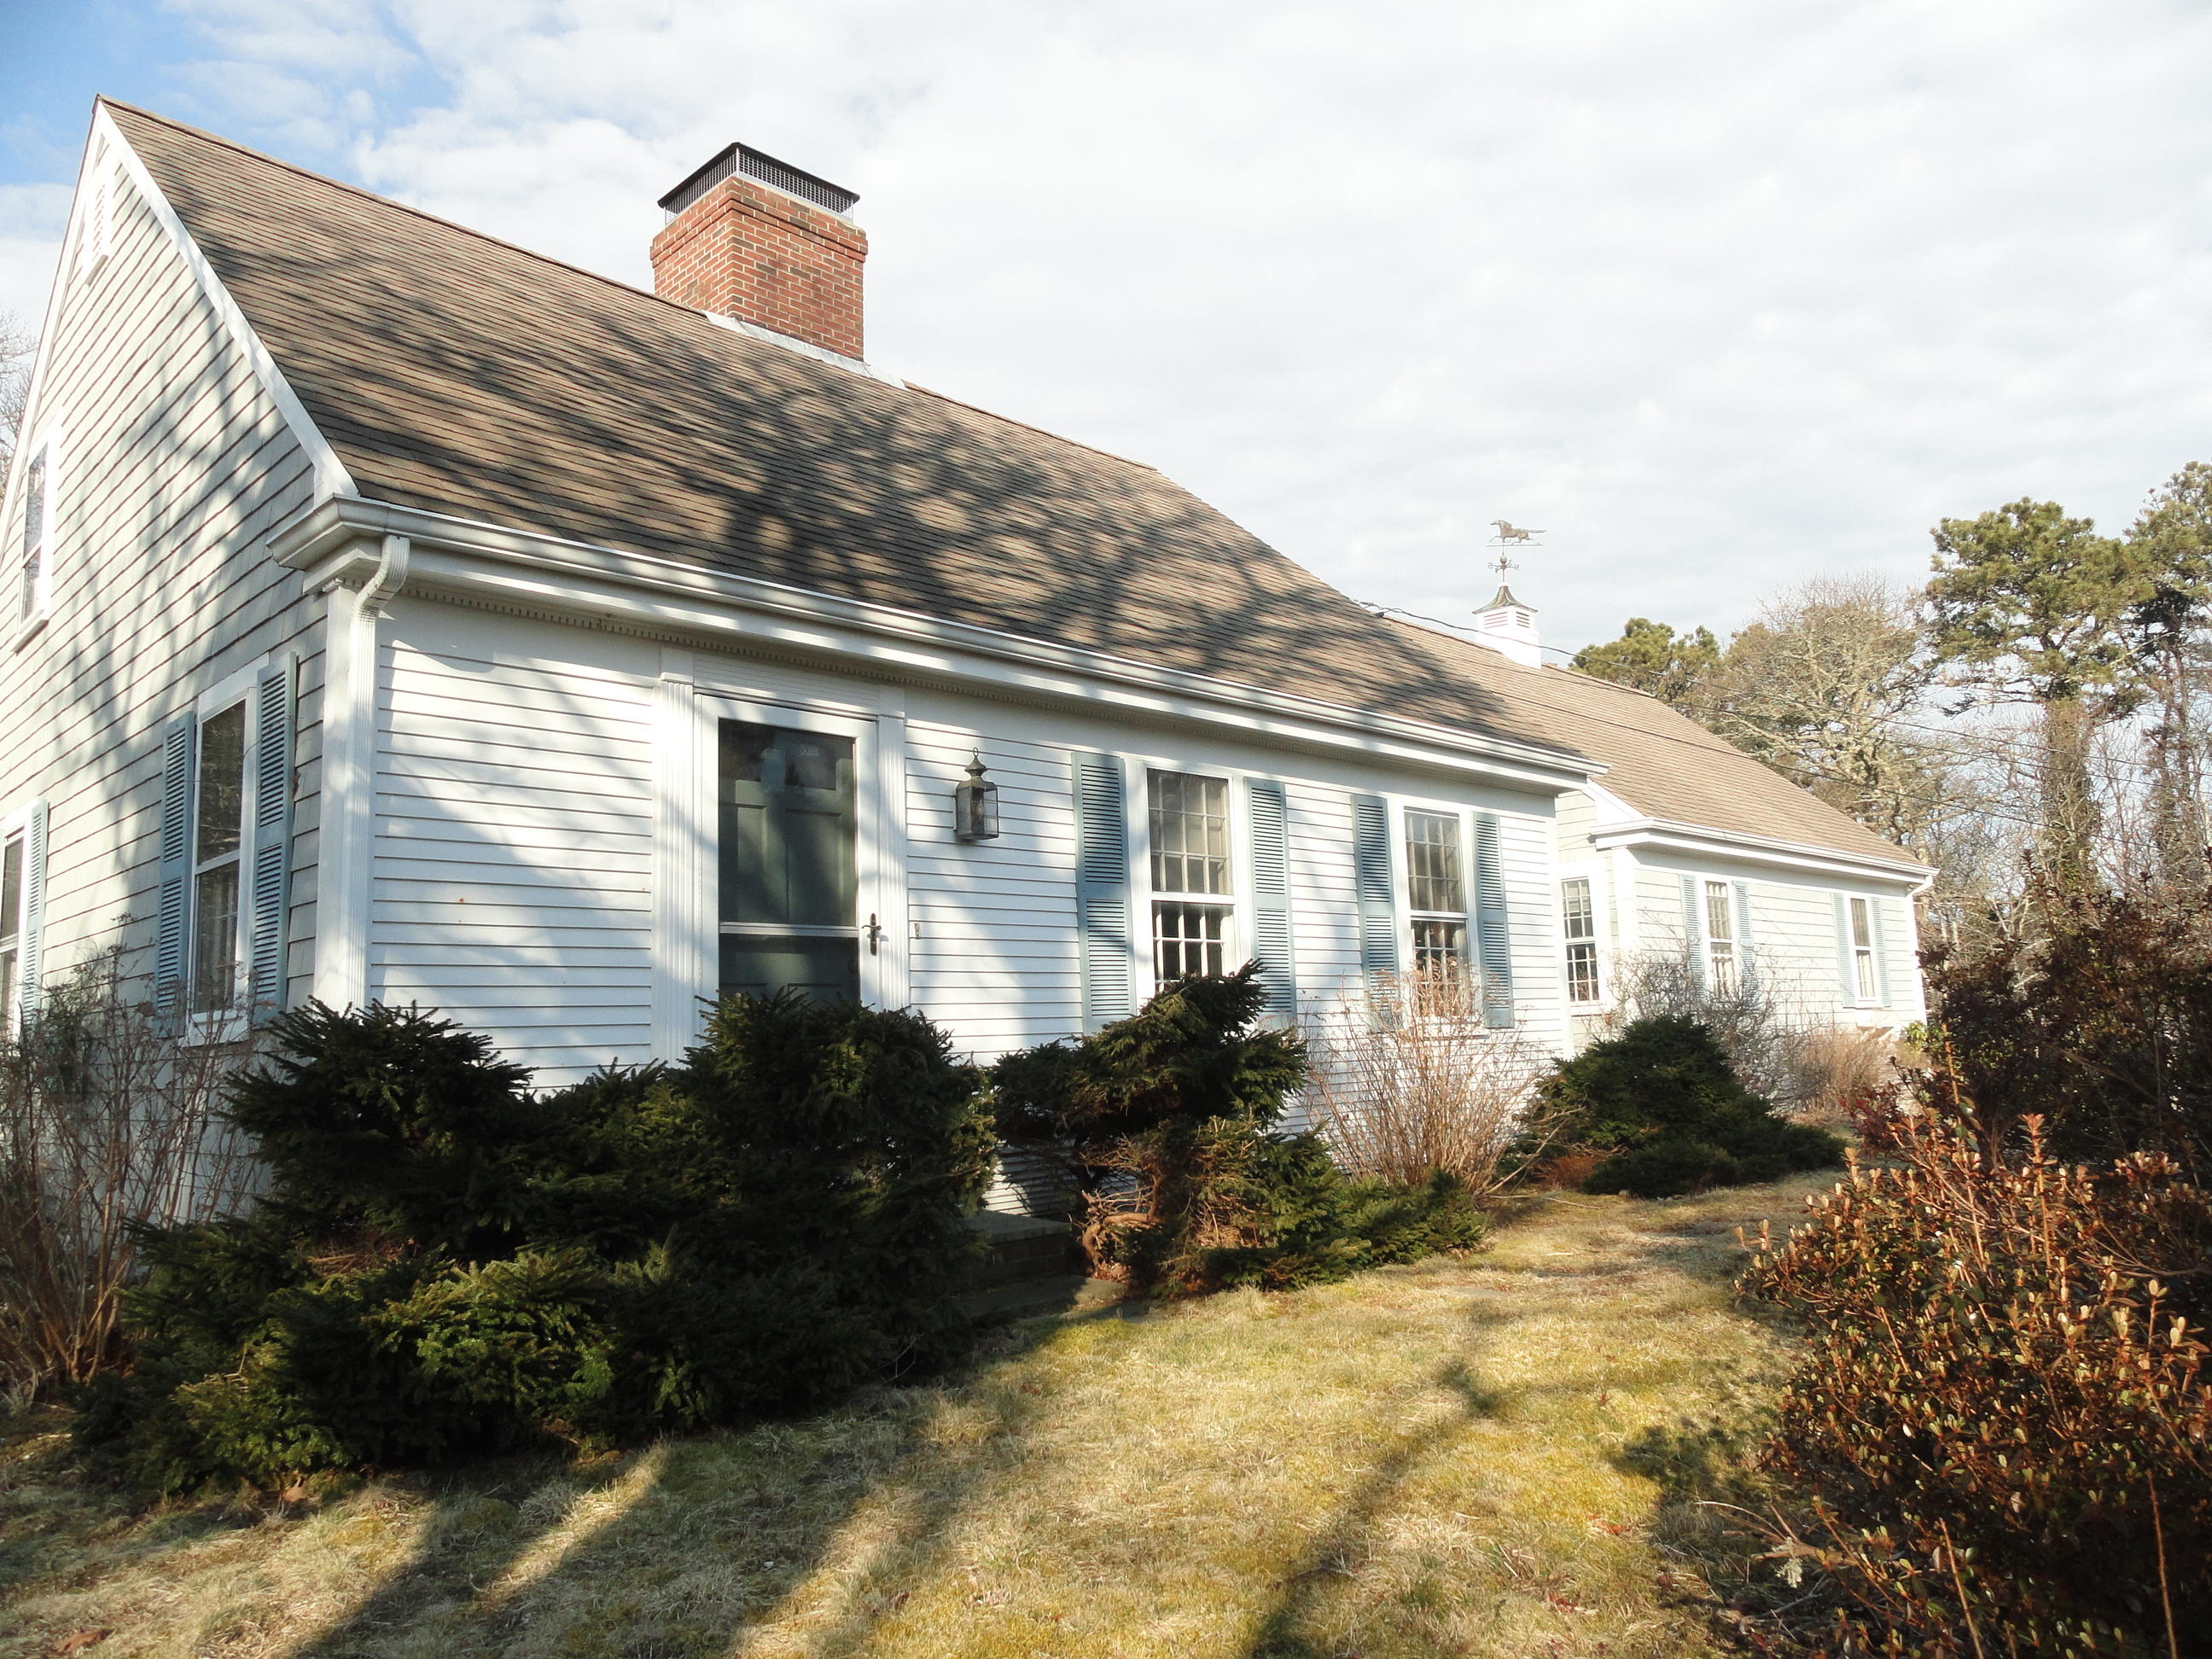 49-winslow-drive-orleans-ma-02653